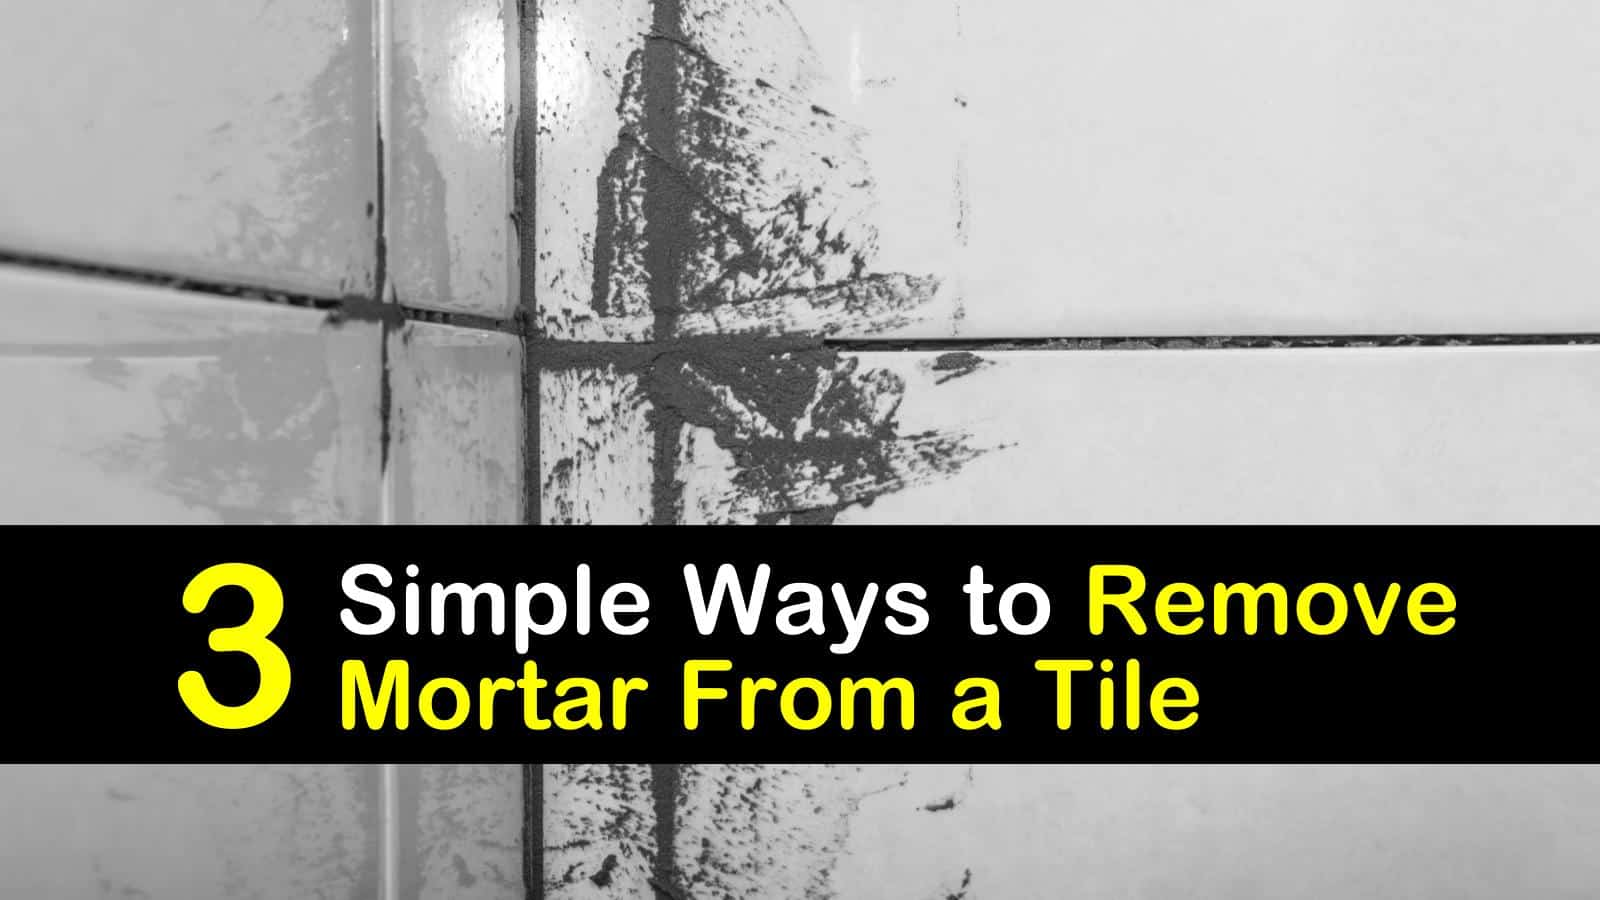 remove mortar from tile titleimg1